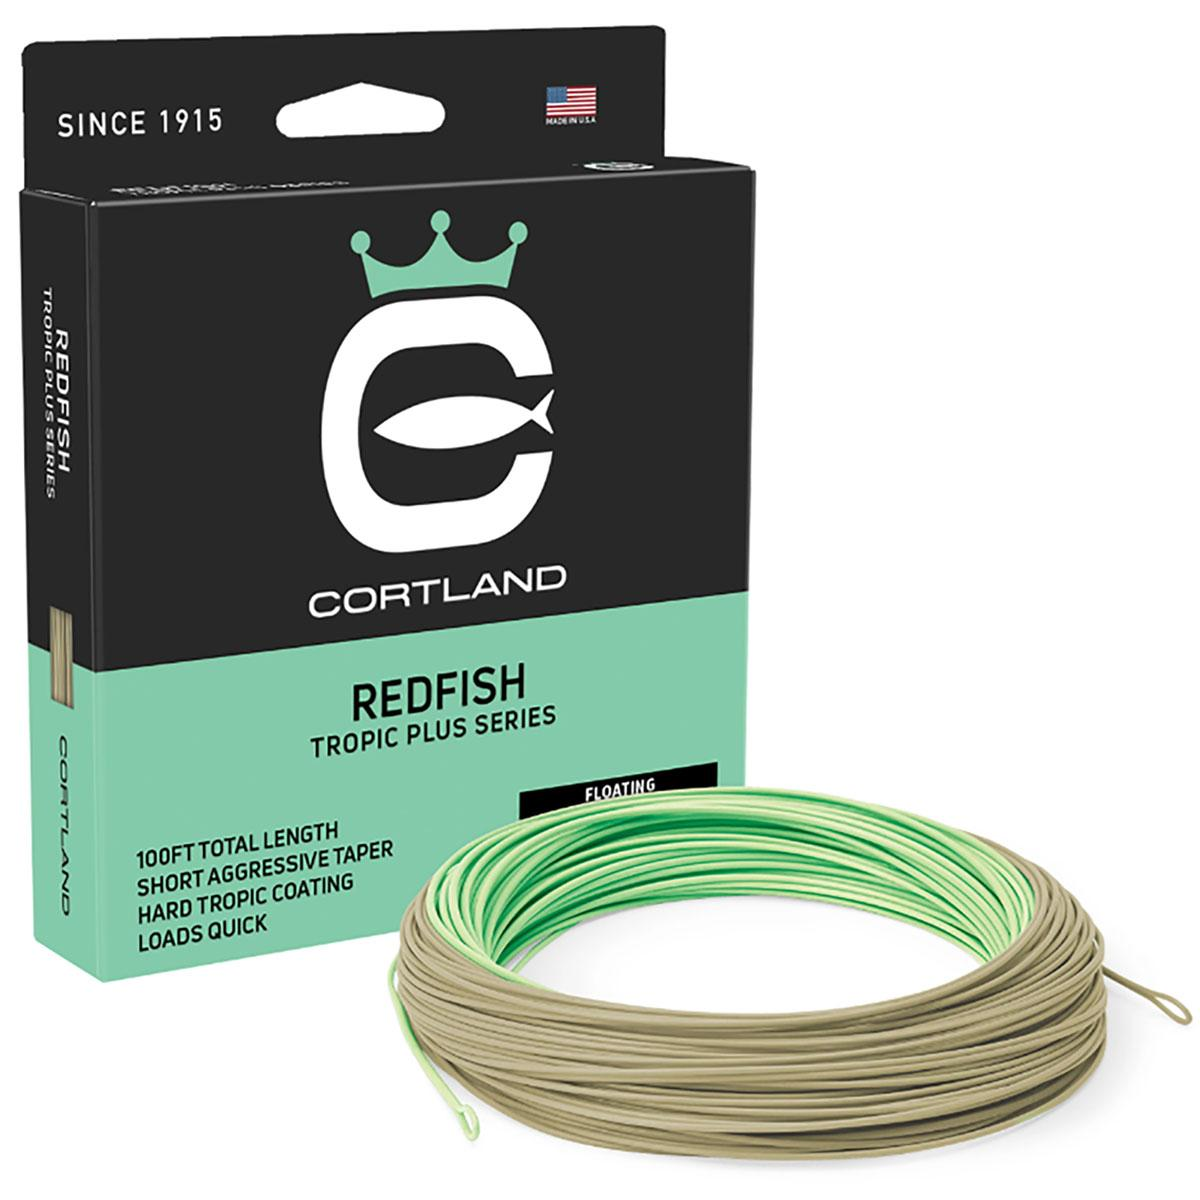 Cortland Tropic Plus Redfish Fly Line